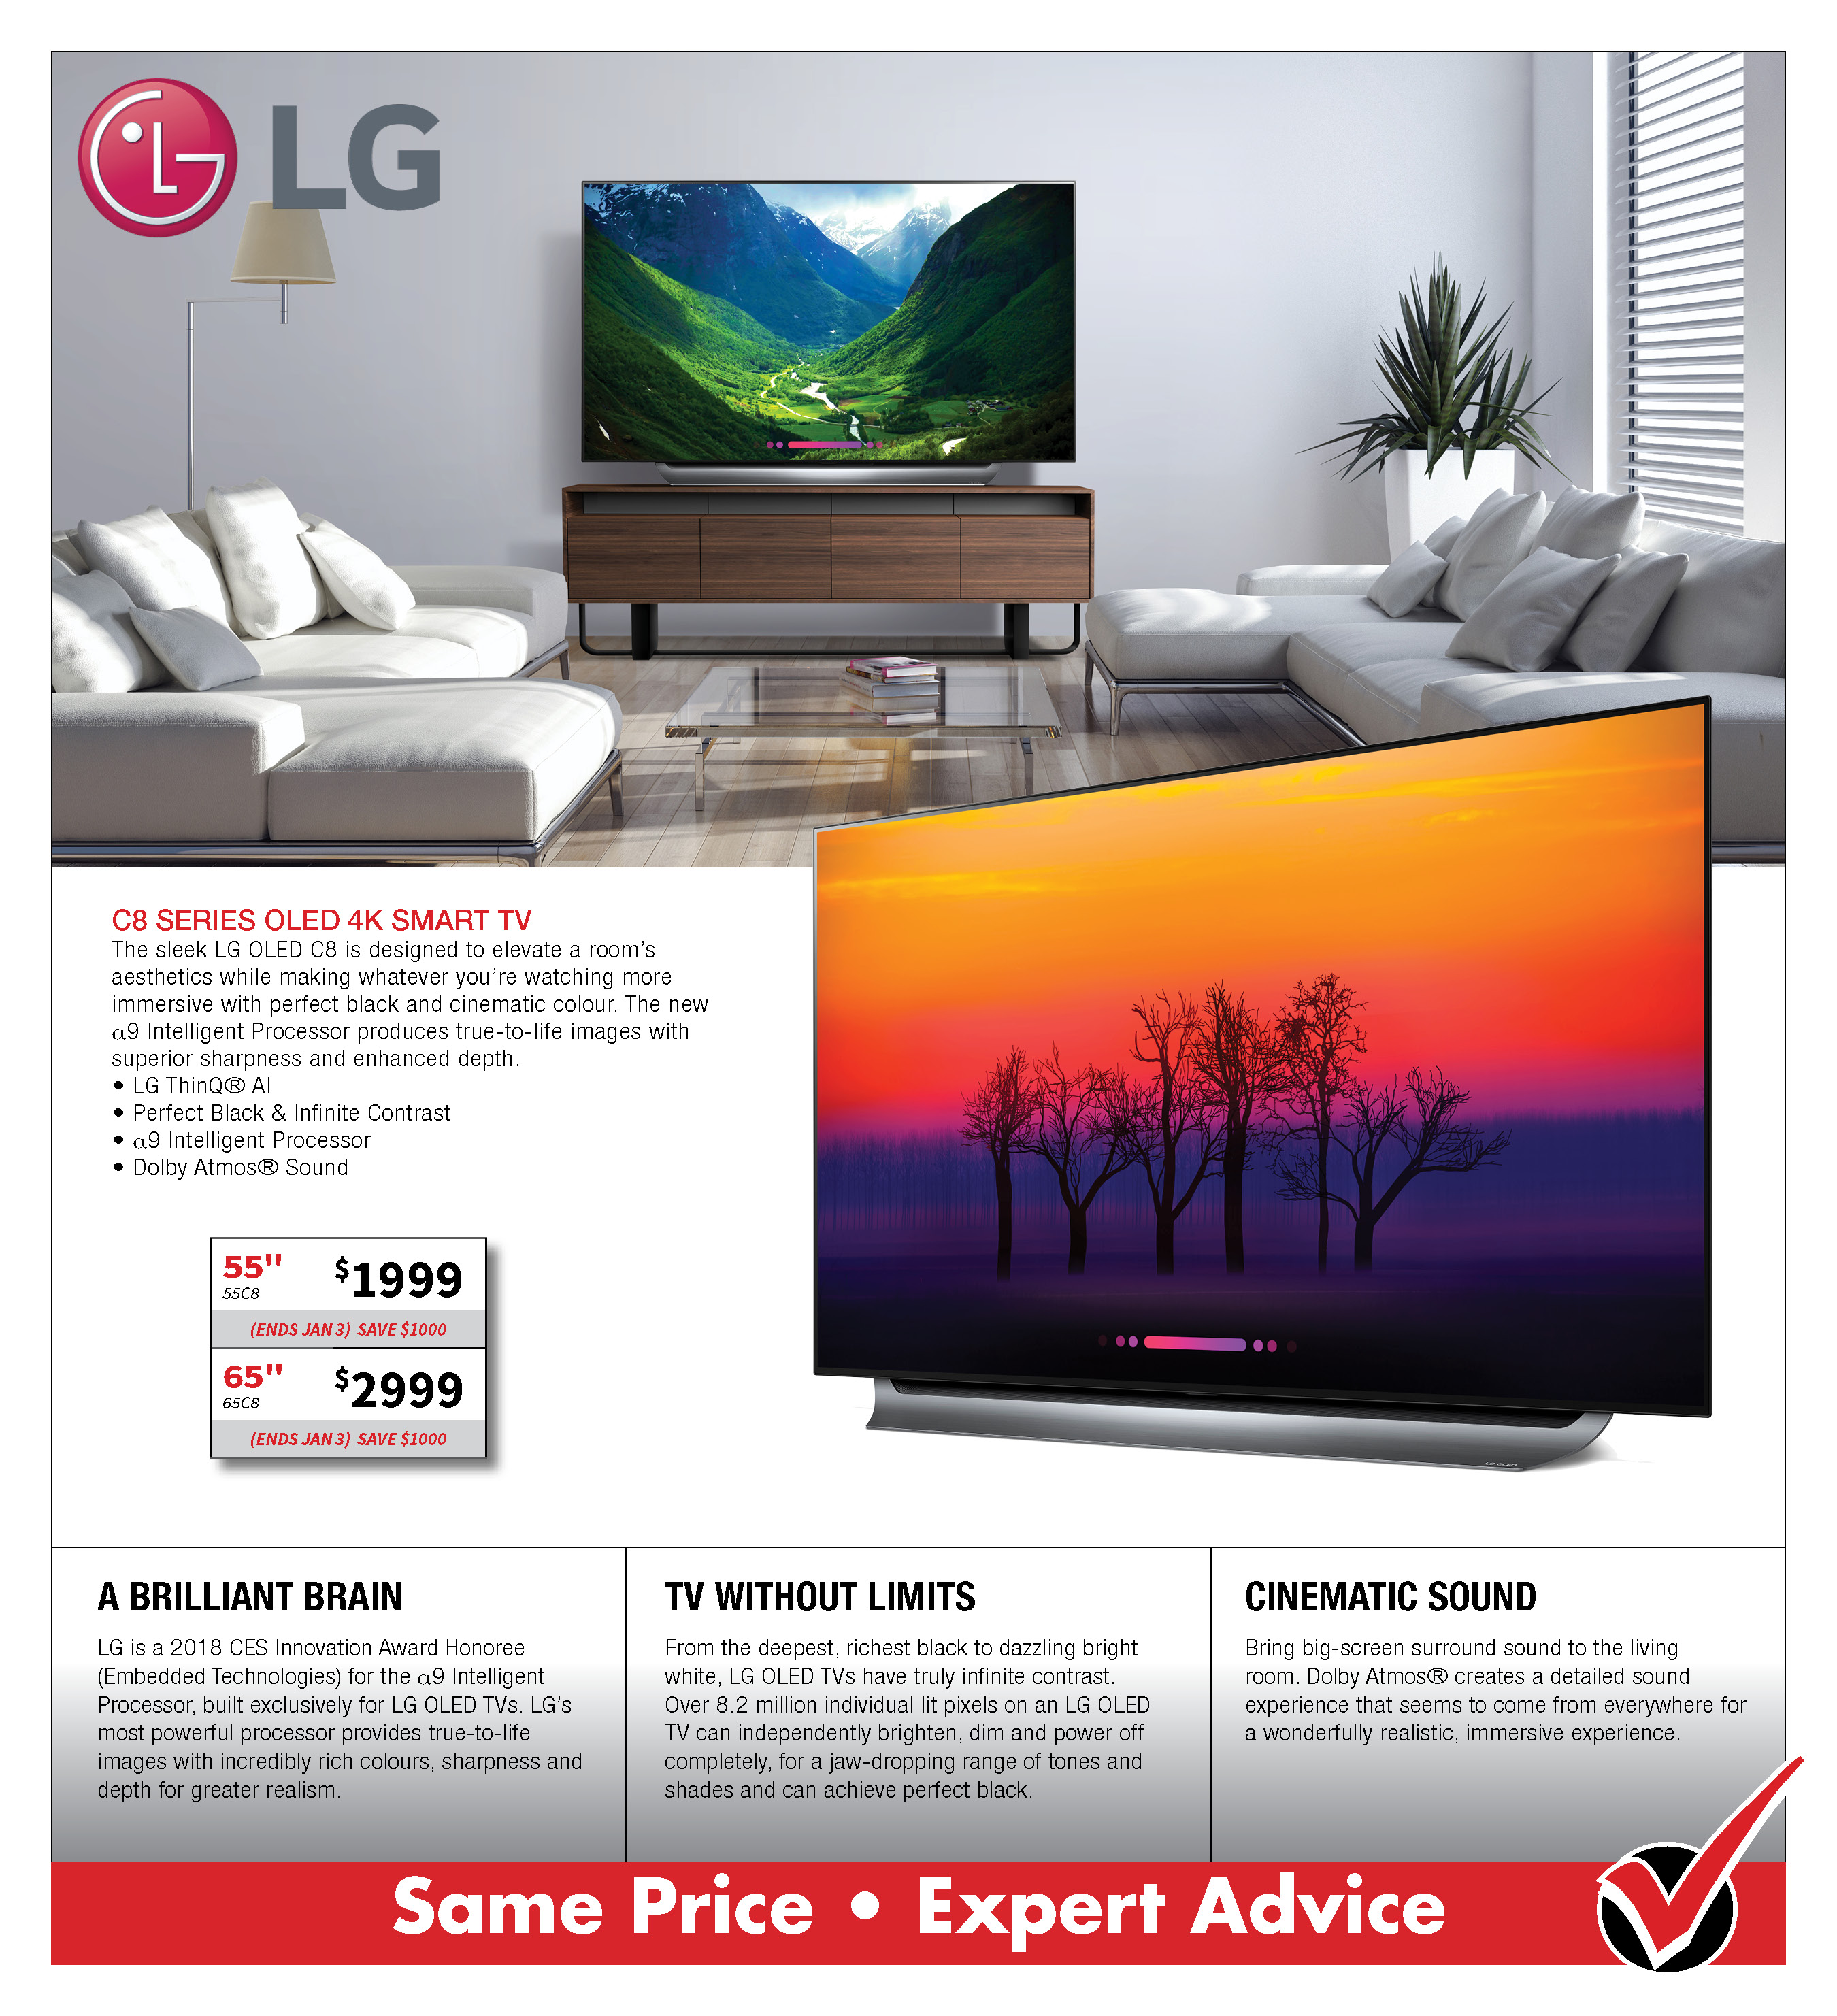 LG C8 OLED 4K SMART TV